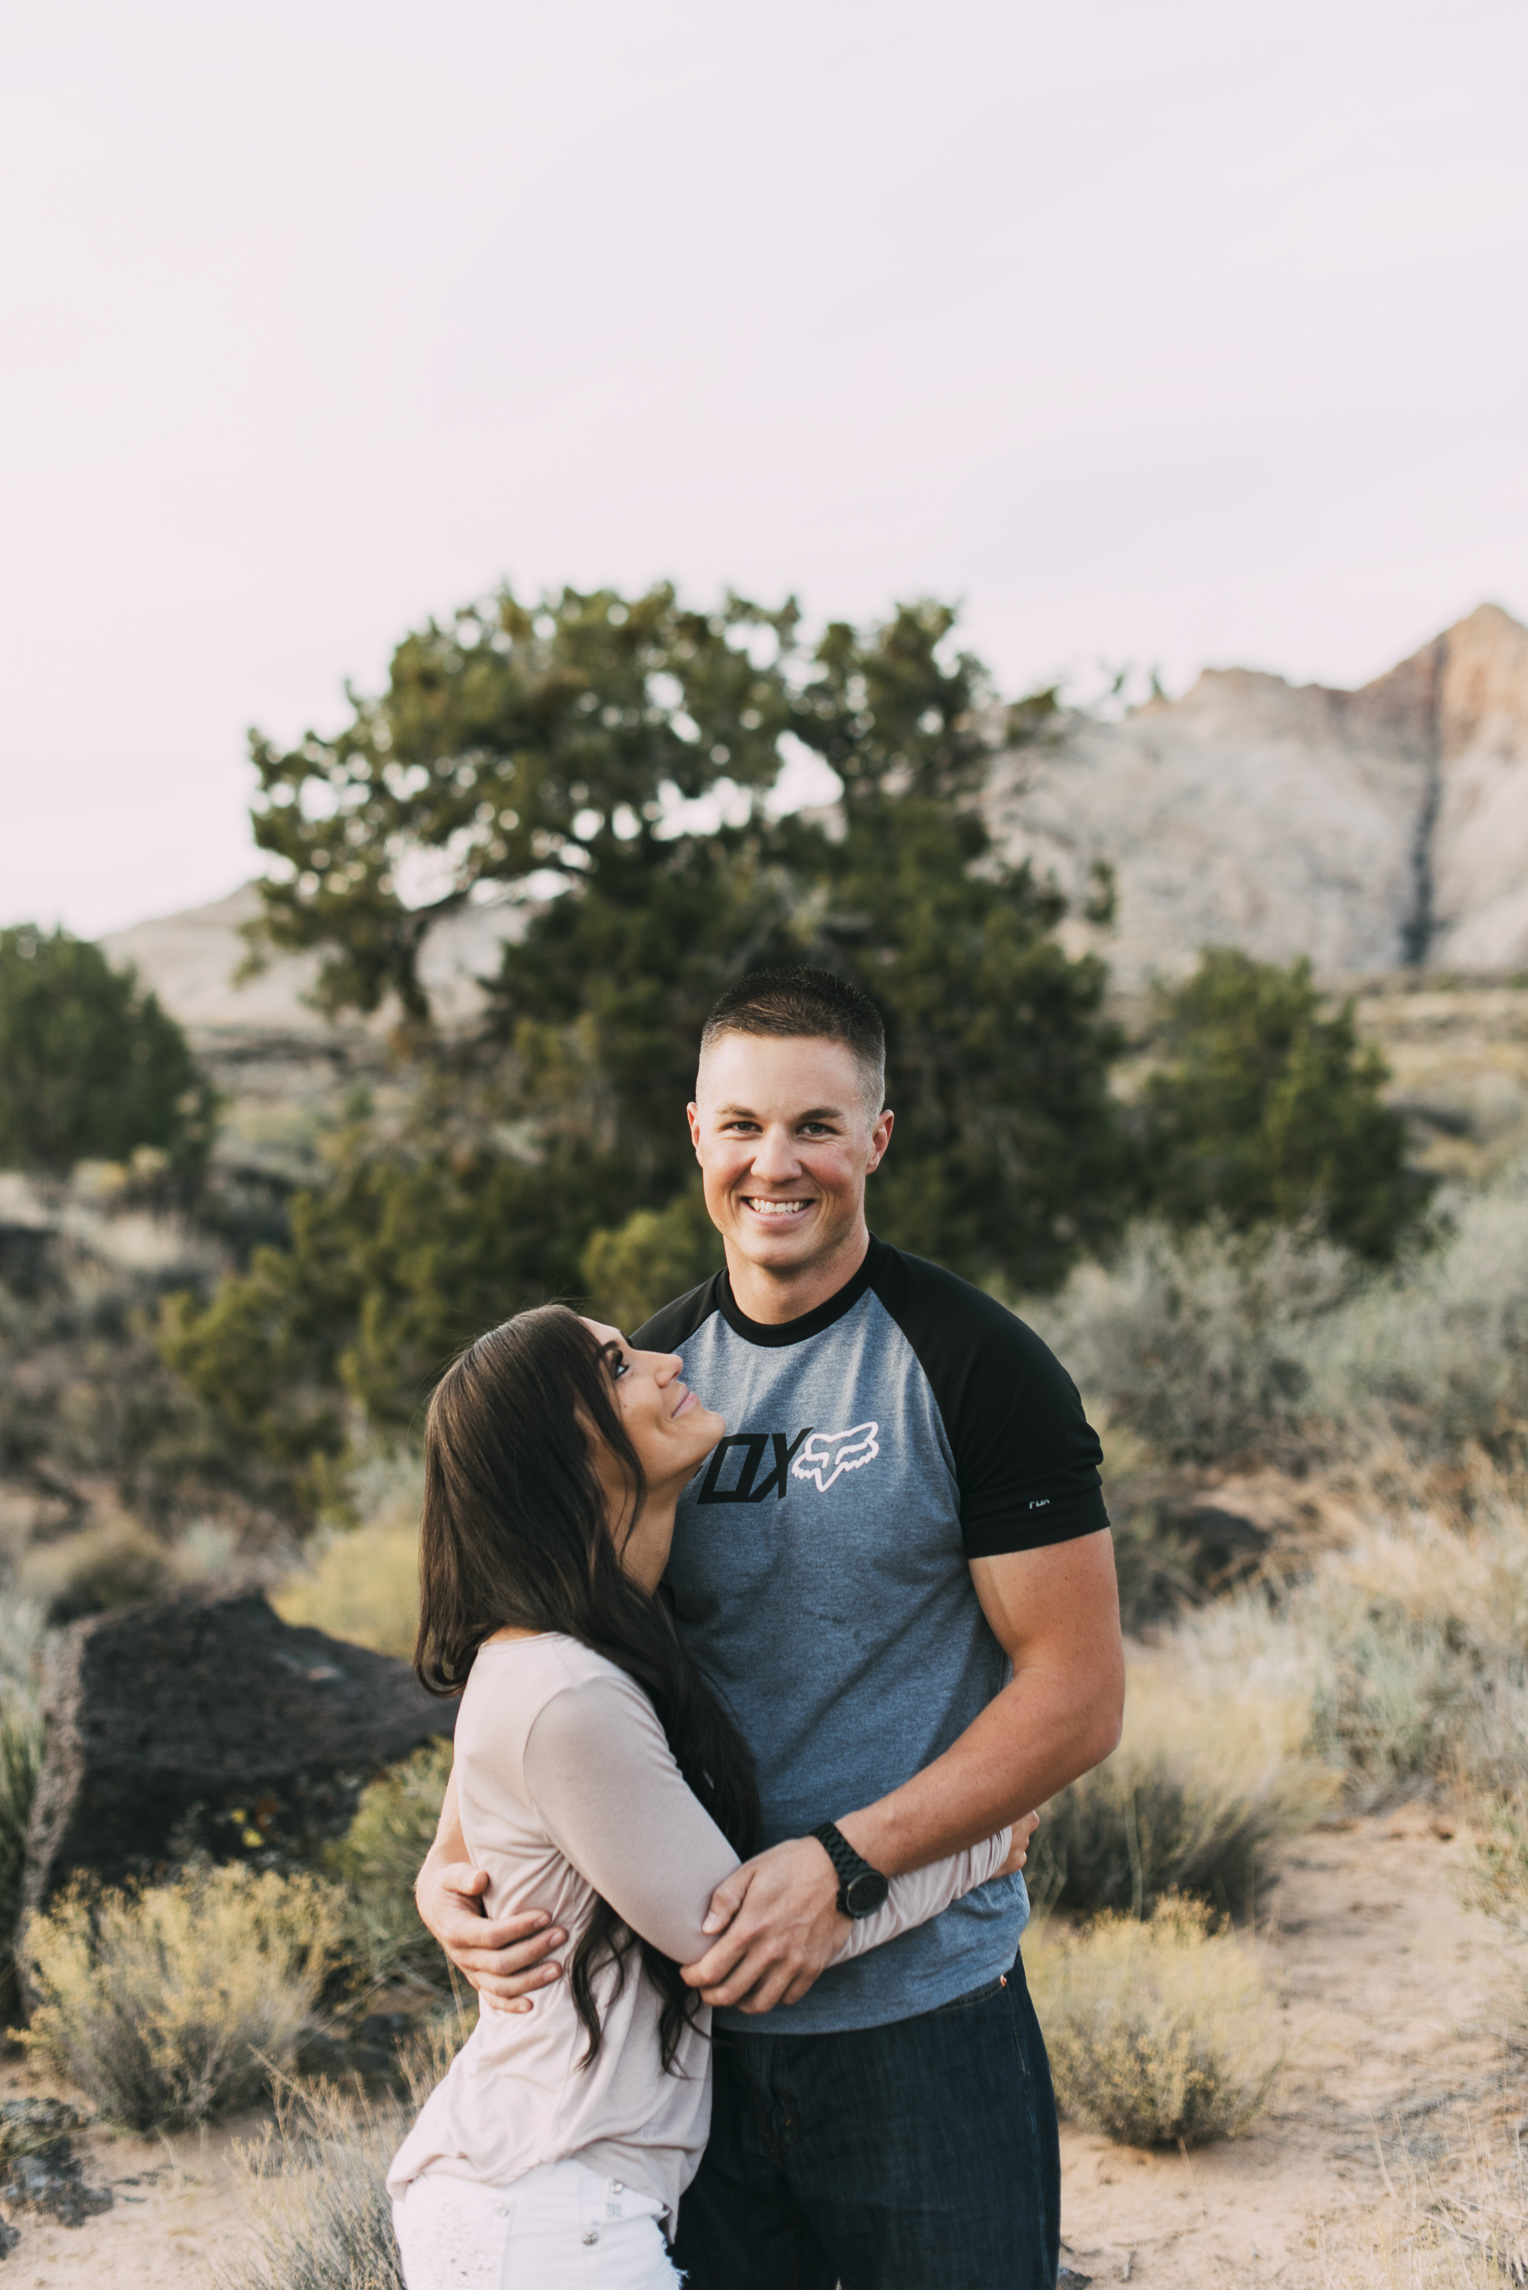 050416KELSEY & RUSTIN ENGAGEMENTS - ST. GEORGE LAS VEGAS PHOTOGRAPHER - DEBI RAE PHOTOGRAPHY-69.jpg